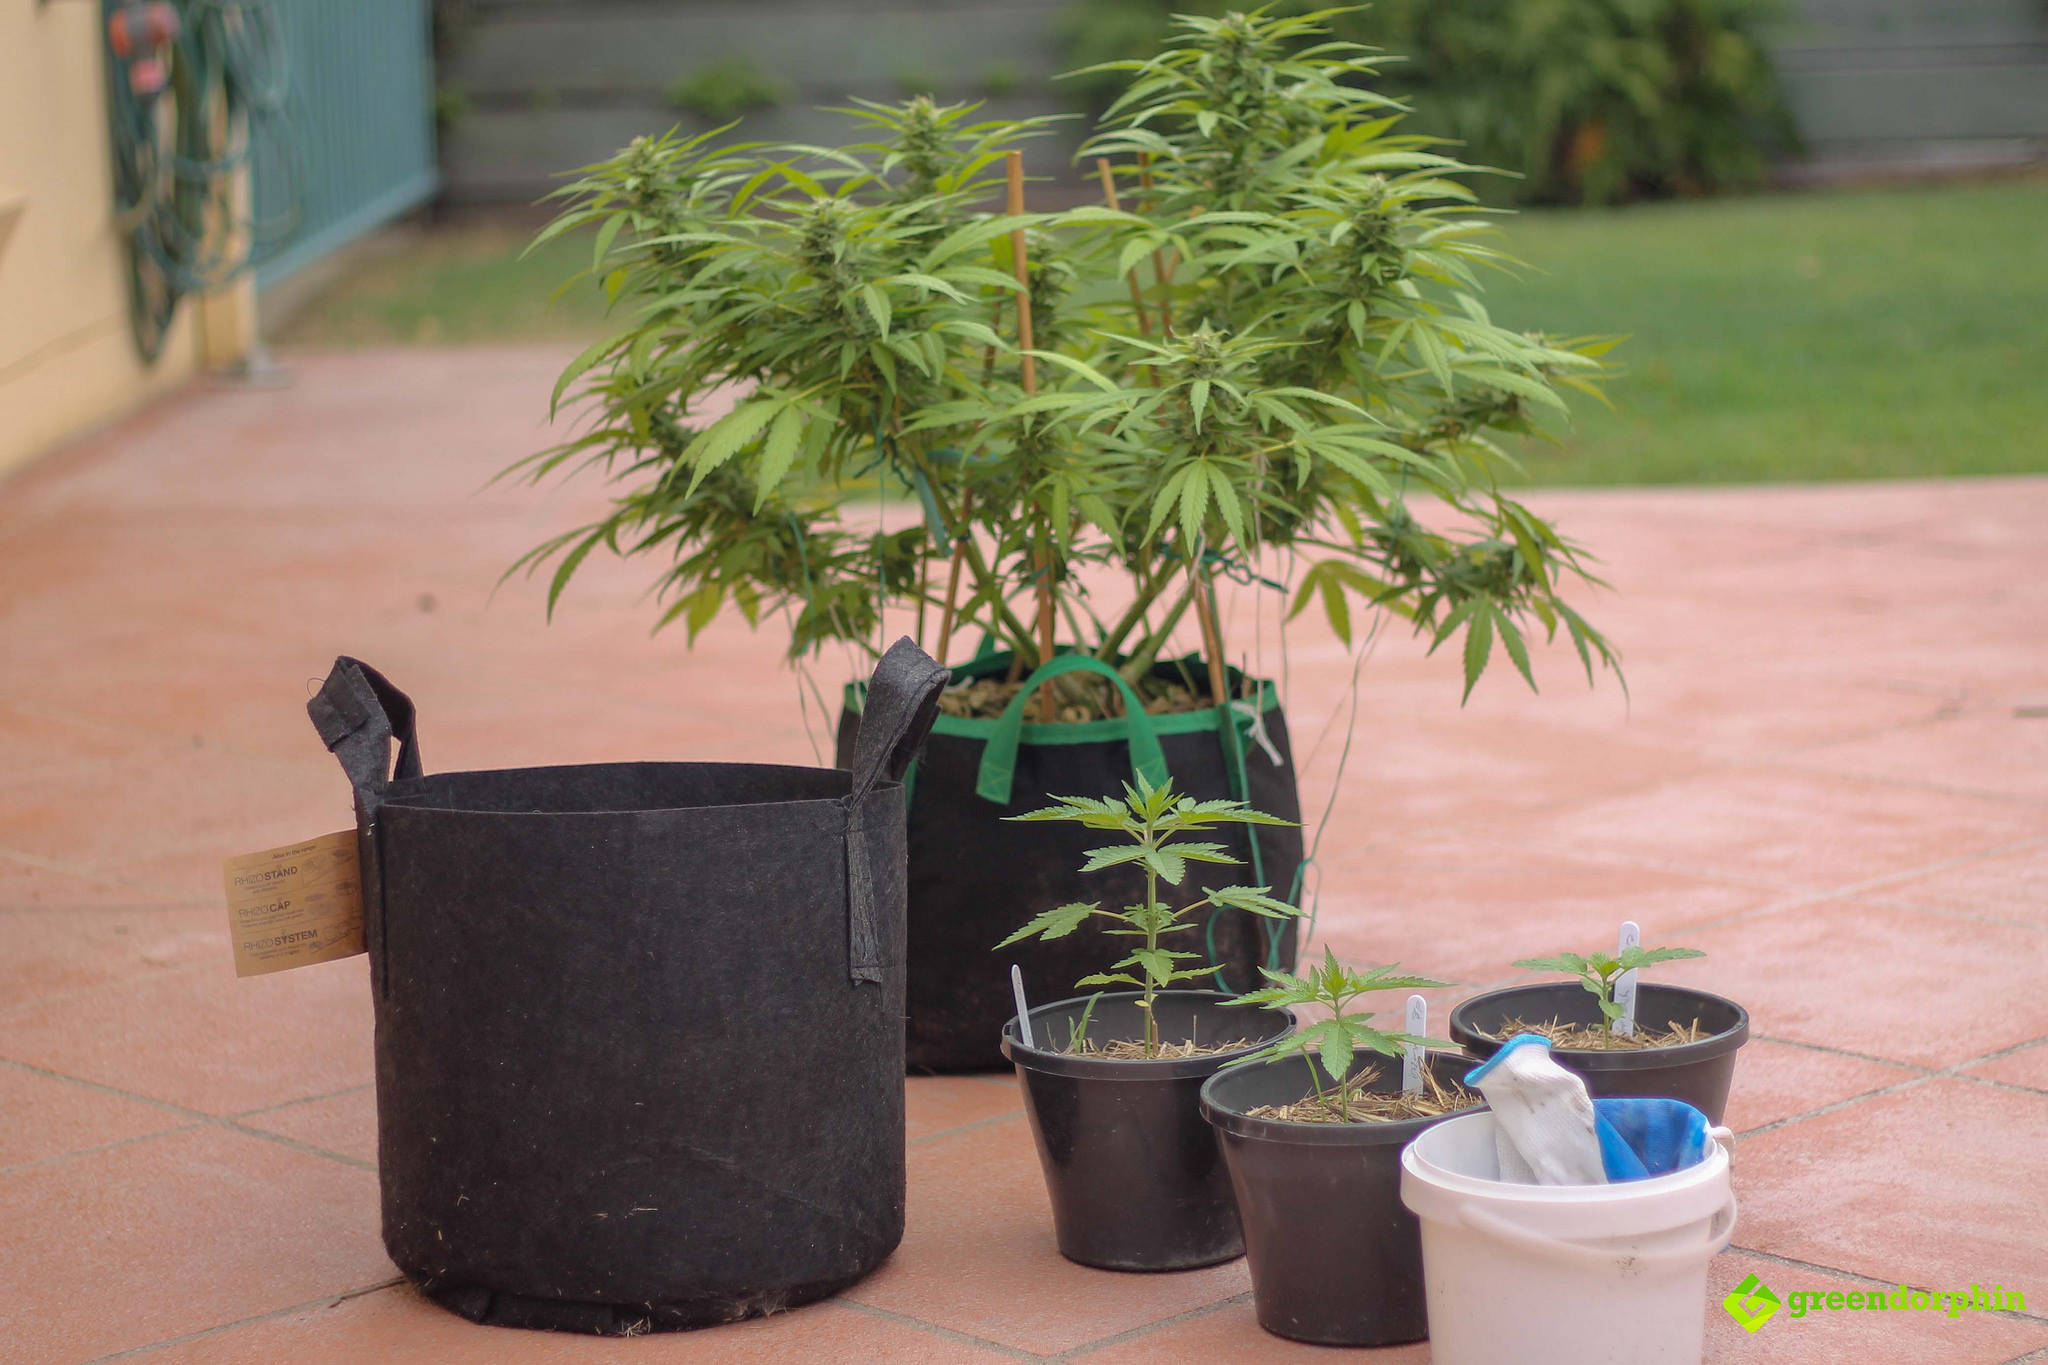 Repot Your Cannabis Plants title shot